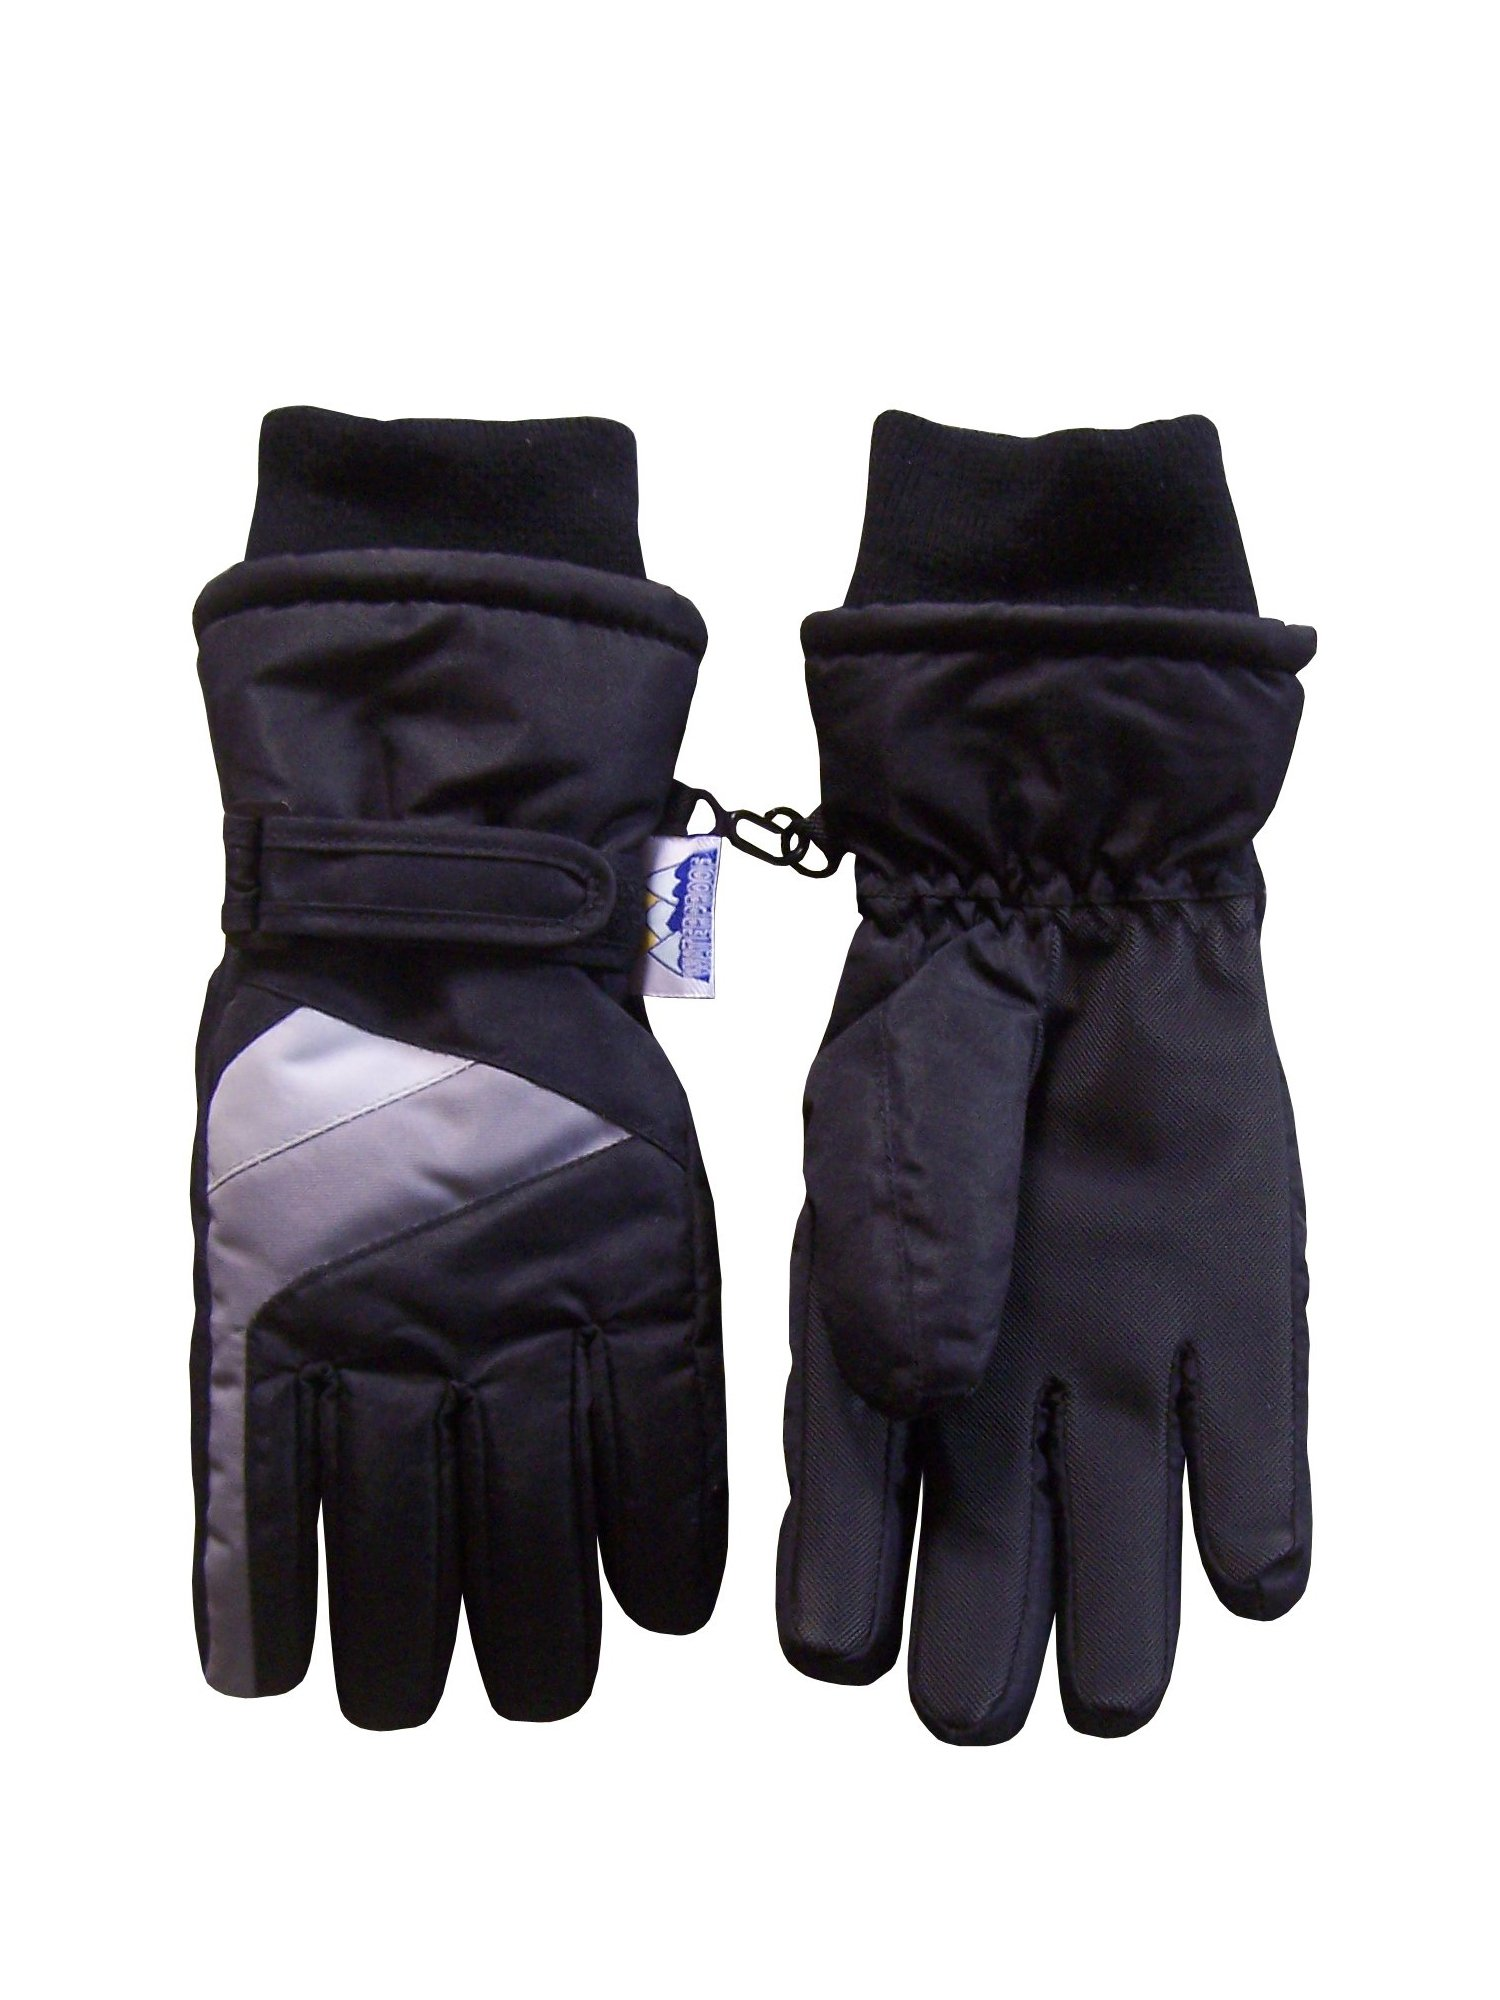 NICE CAPS Kids Unisex Waterproof and Thinsulate Lined Insulated Colorblocked Winter Snow Ski Gloves - Fits Boys Girls Toddler Childrens Child Youth Teens Sizes For Cold Weather